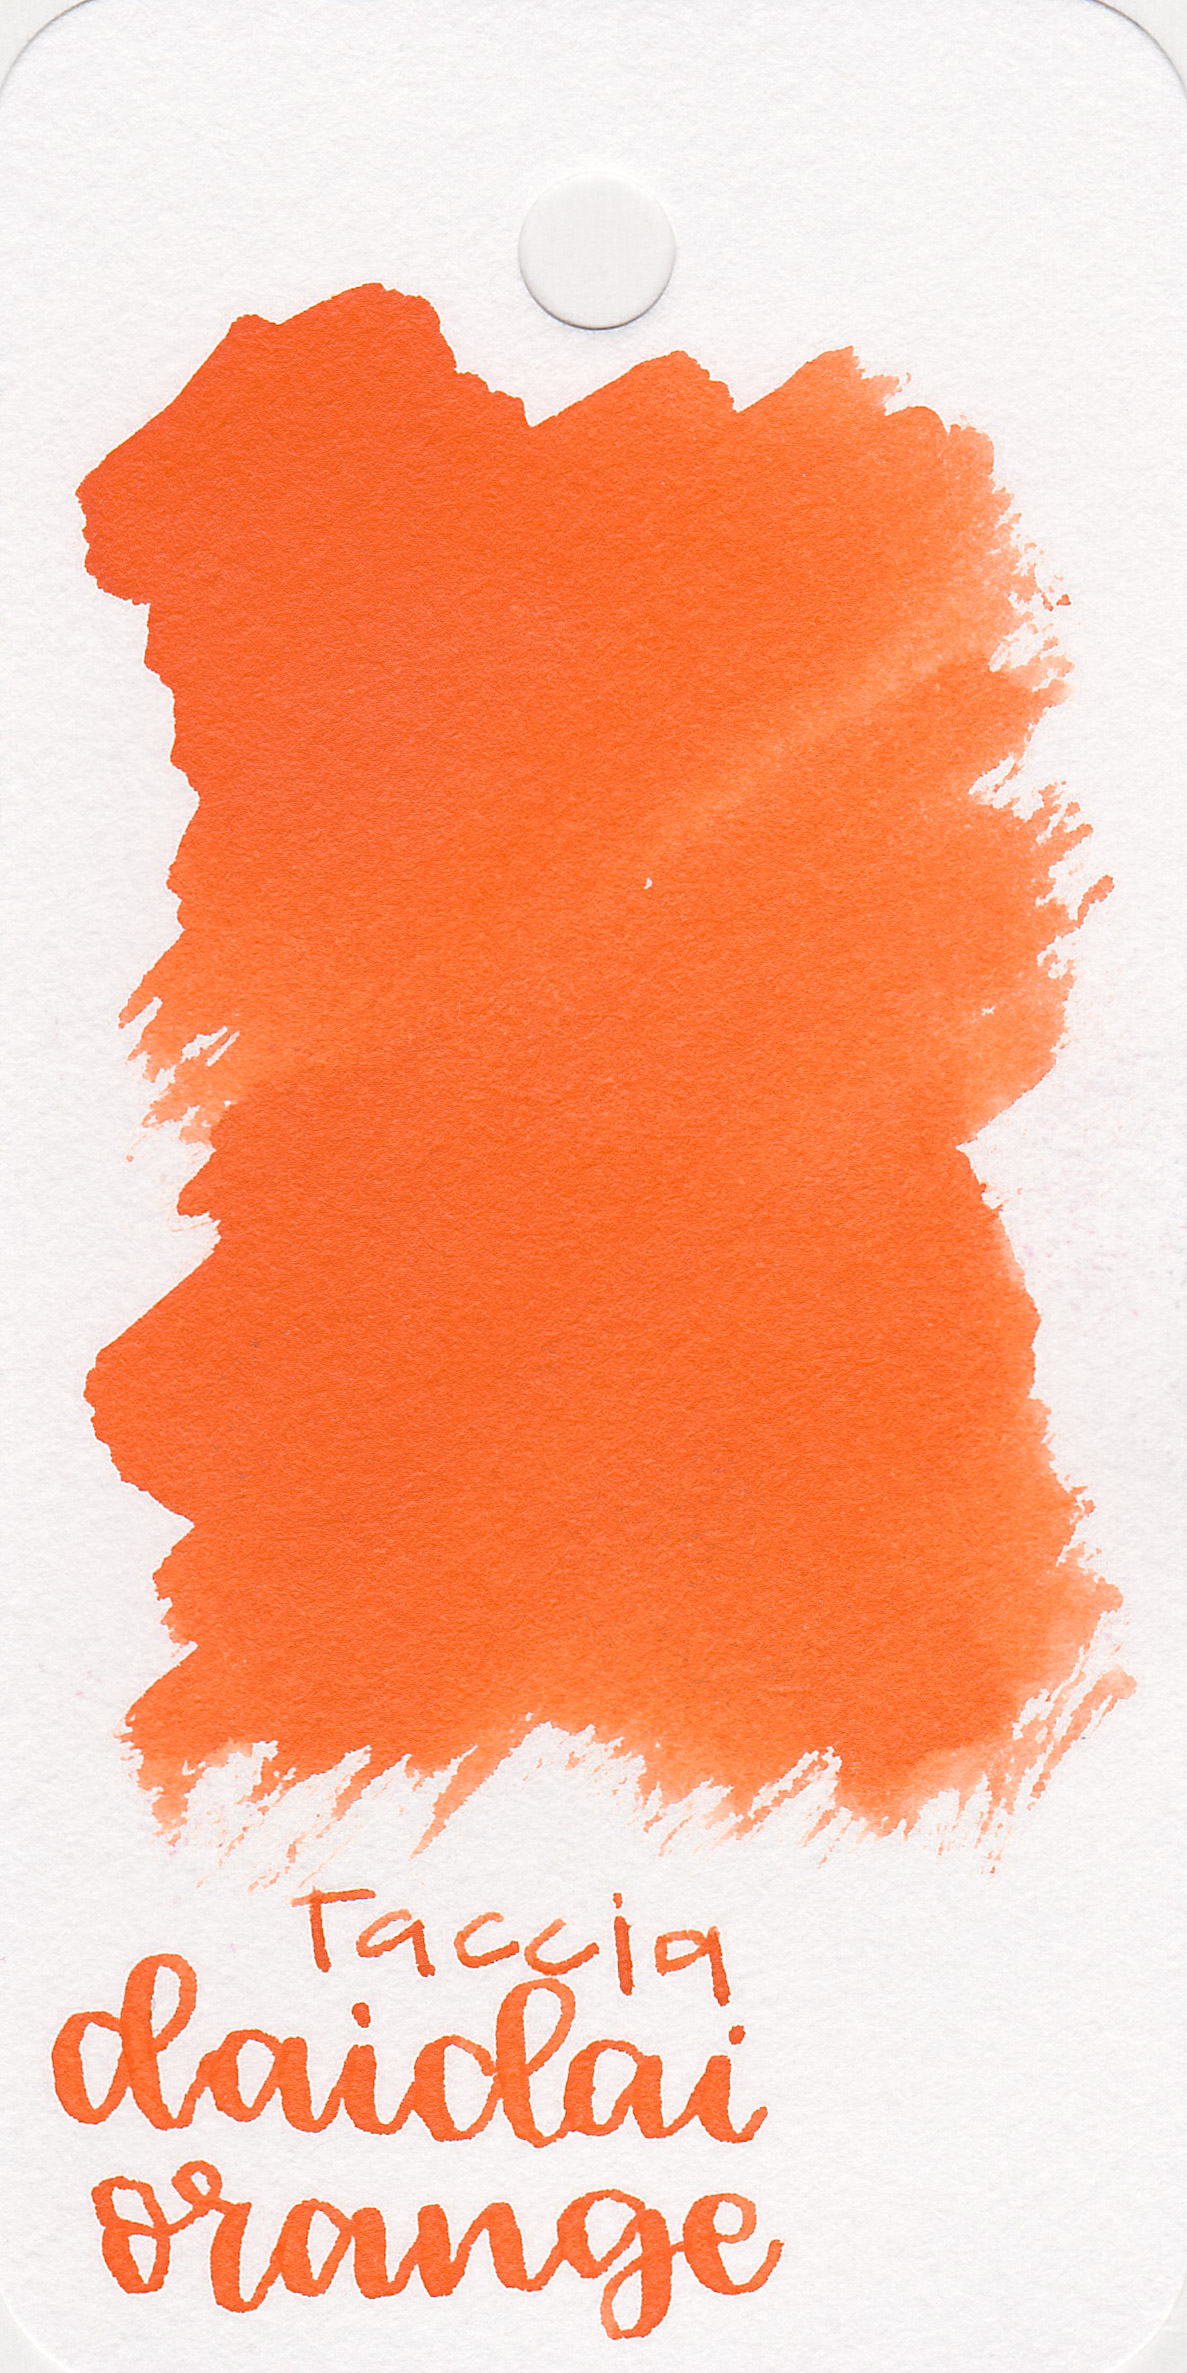 tac-daida-orange-1.jpg